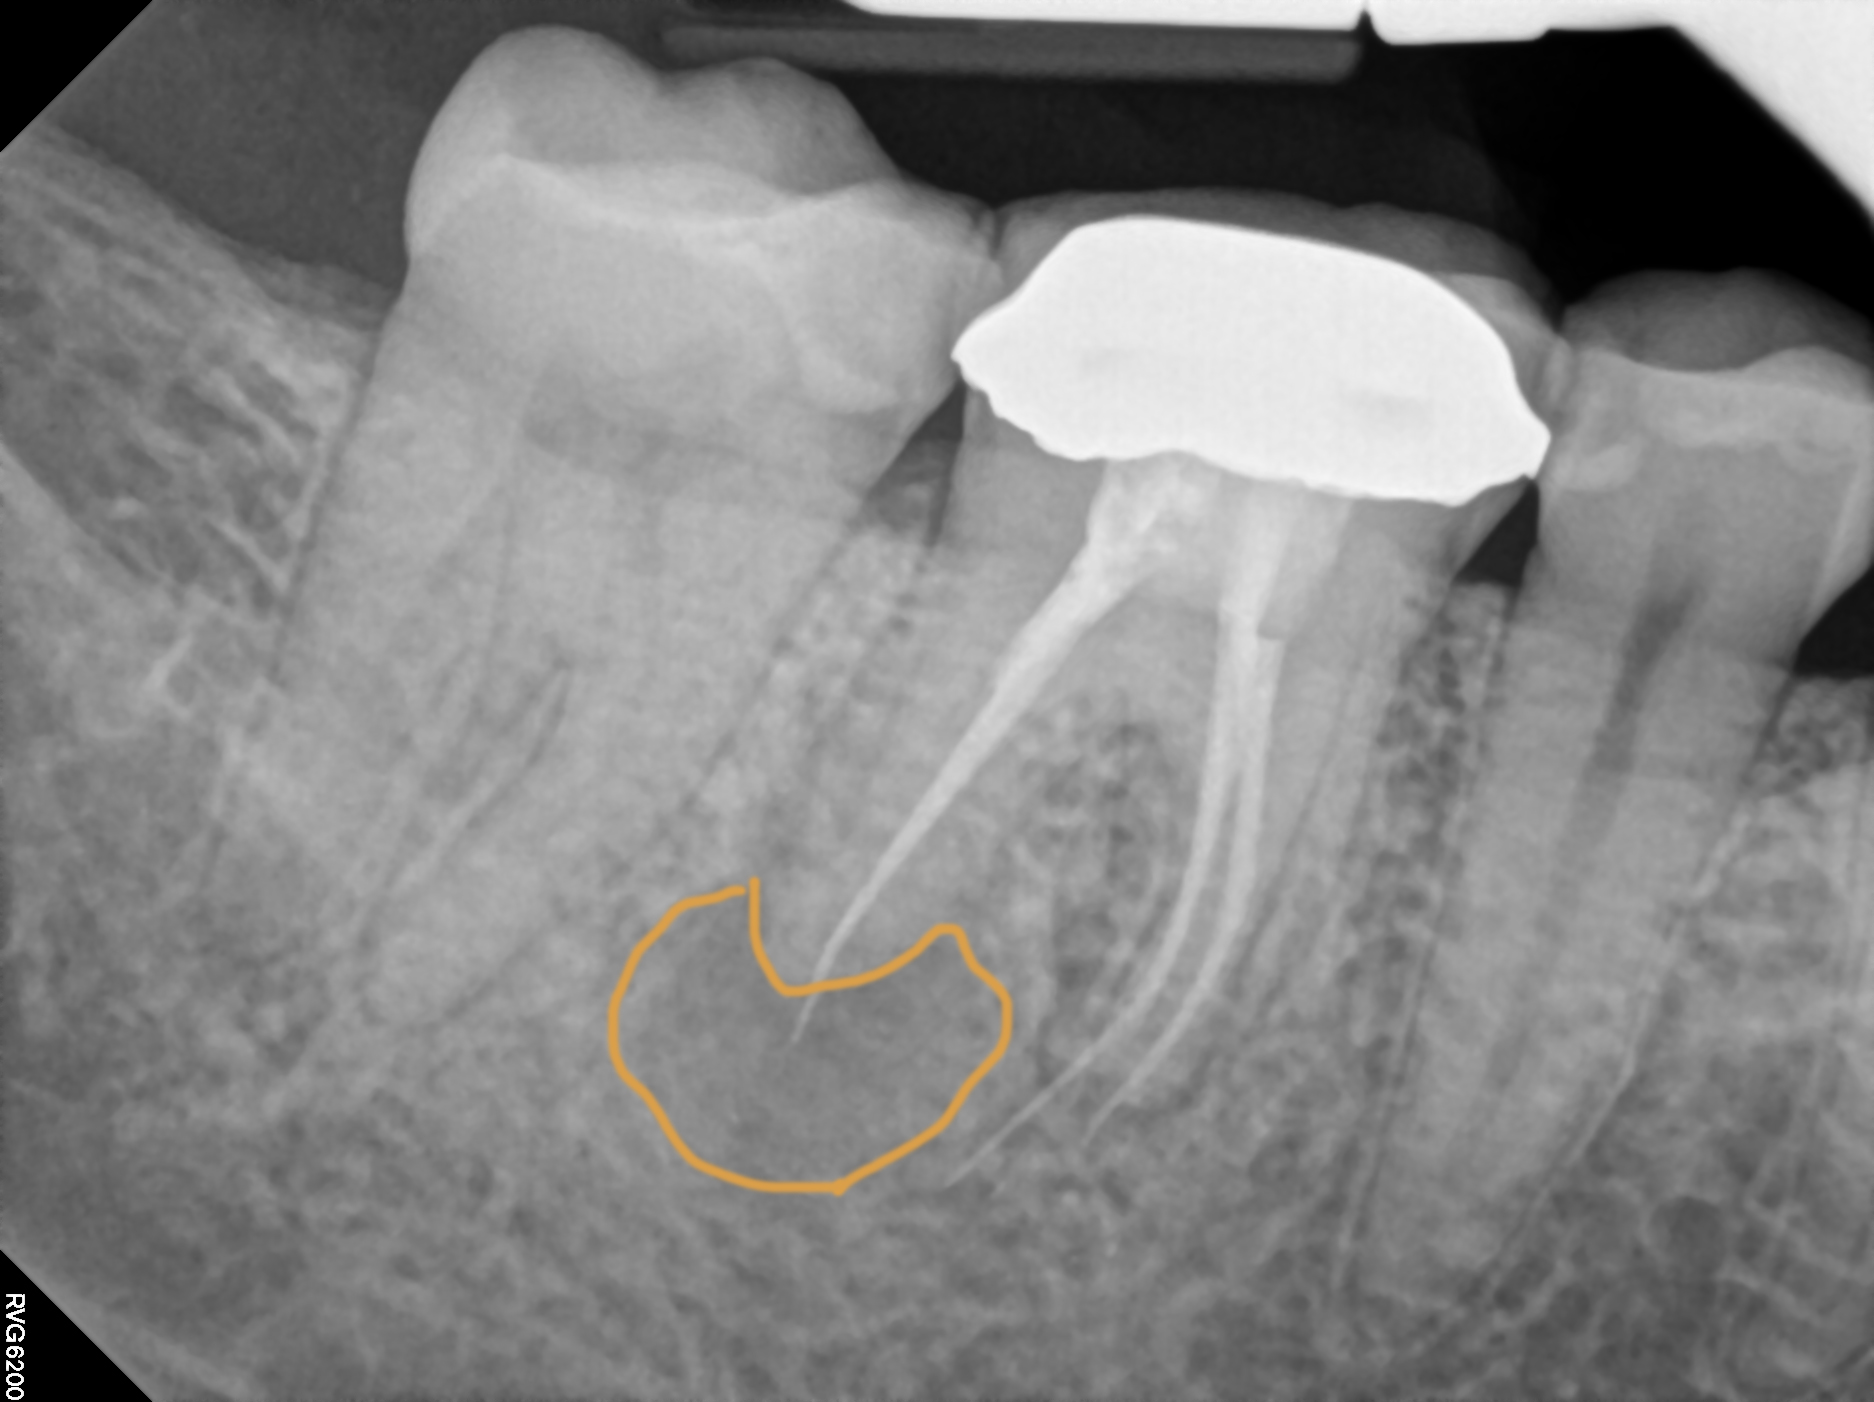 My root canal with abscess below. Also notice how the material used extends beyond the tooth.